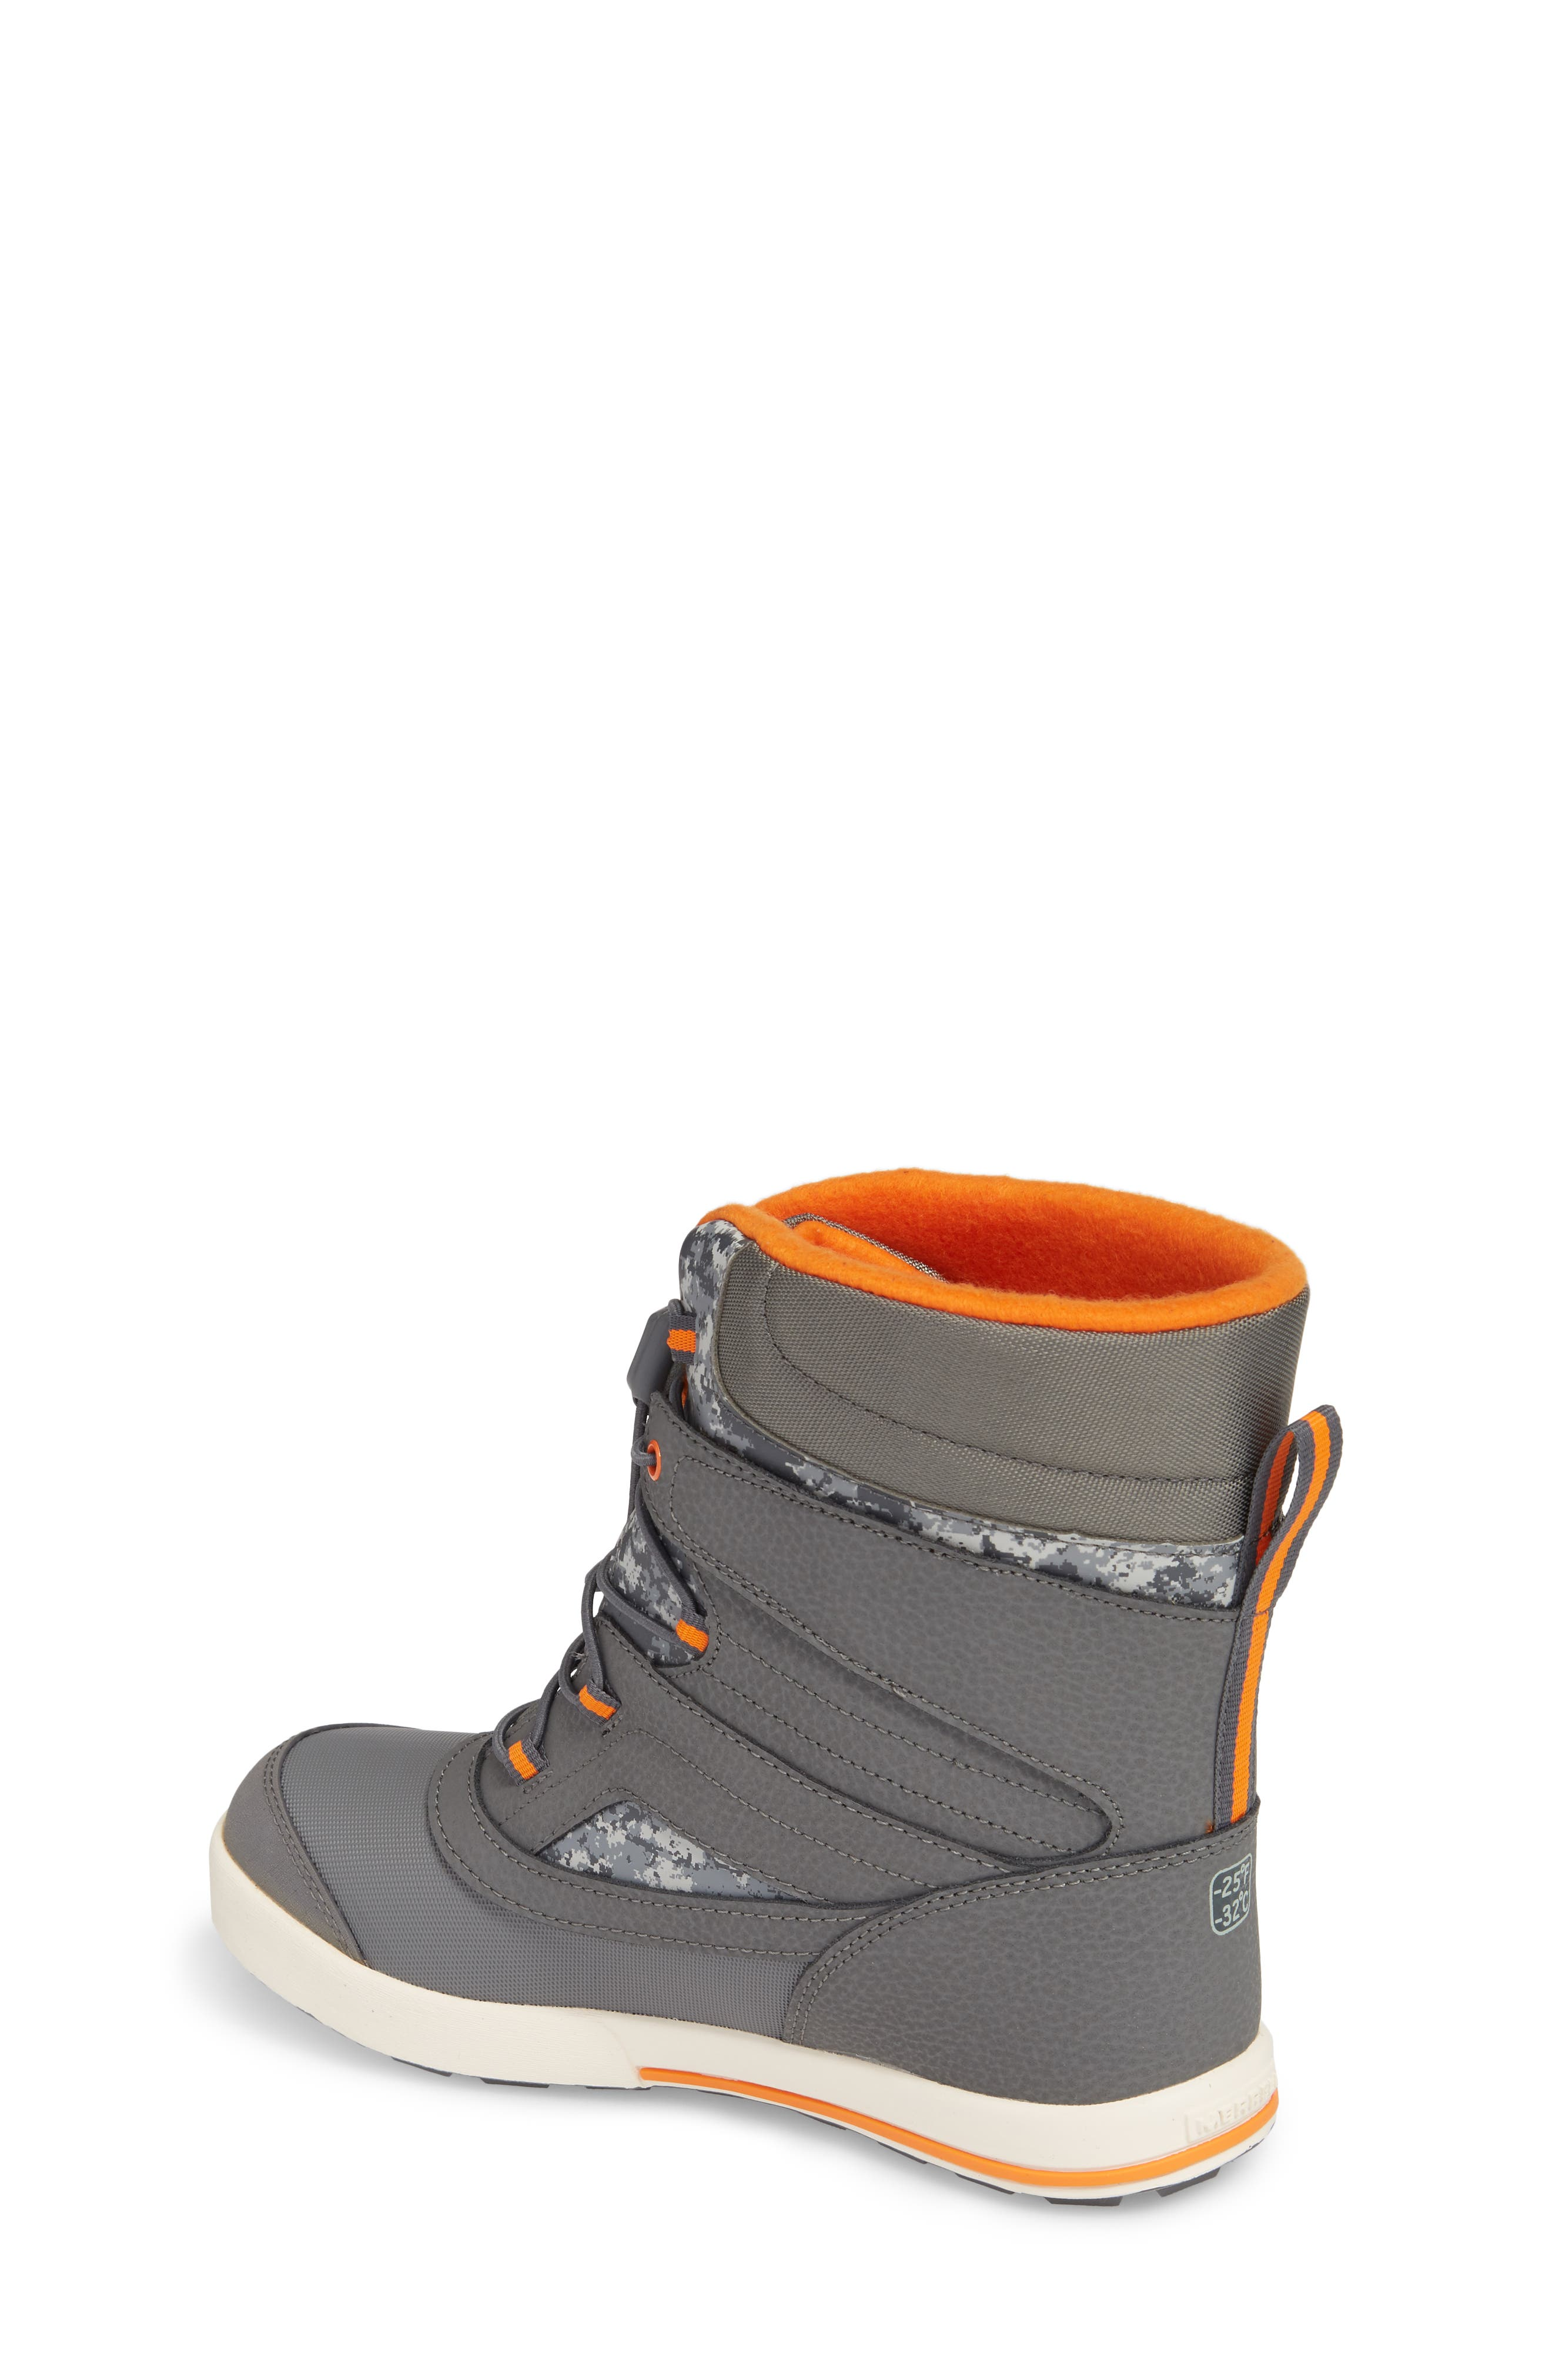 Snow Bank 2 Insulated Waterproof Boot,                             Alternate thumbnail 2, color,                             Grey/ Orange